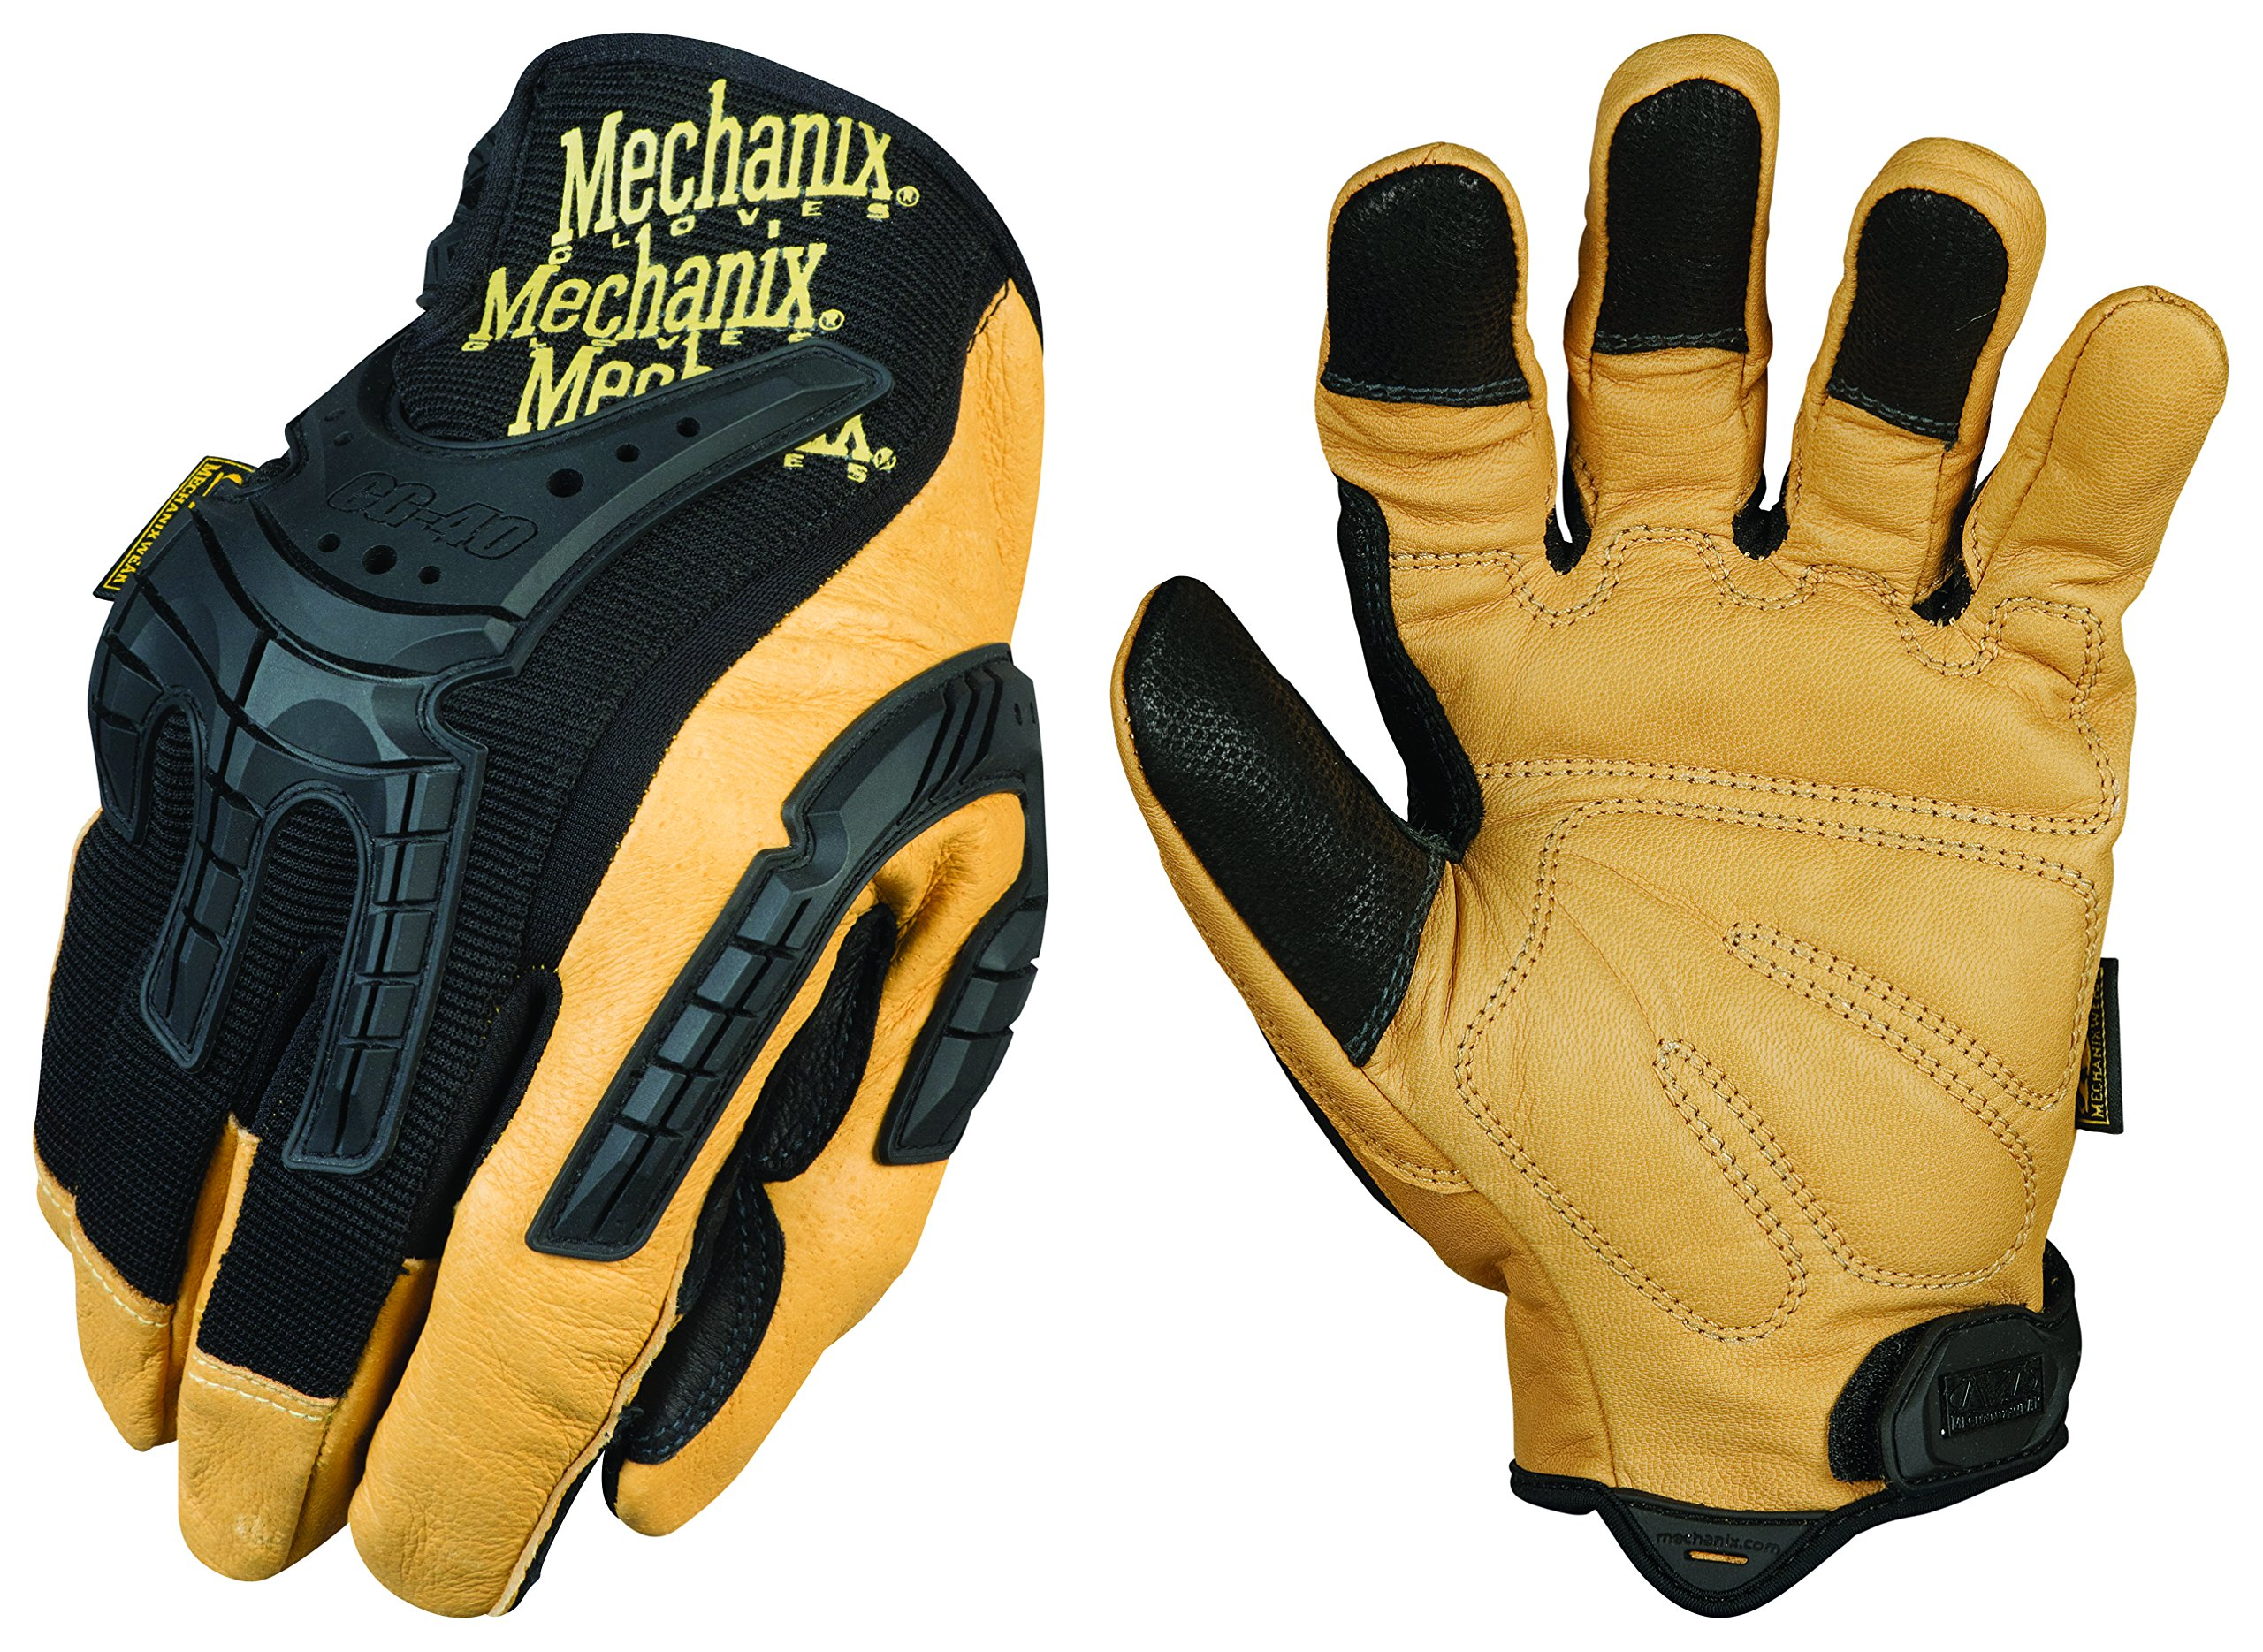 Mechanix Wear - CG Leather Heavy Duty Gloves (Medium, Brown/Black) by Mechanix Wear